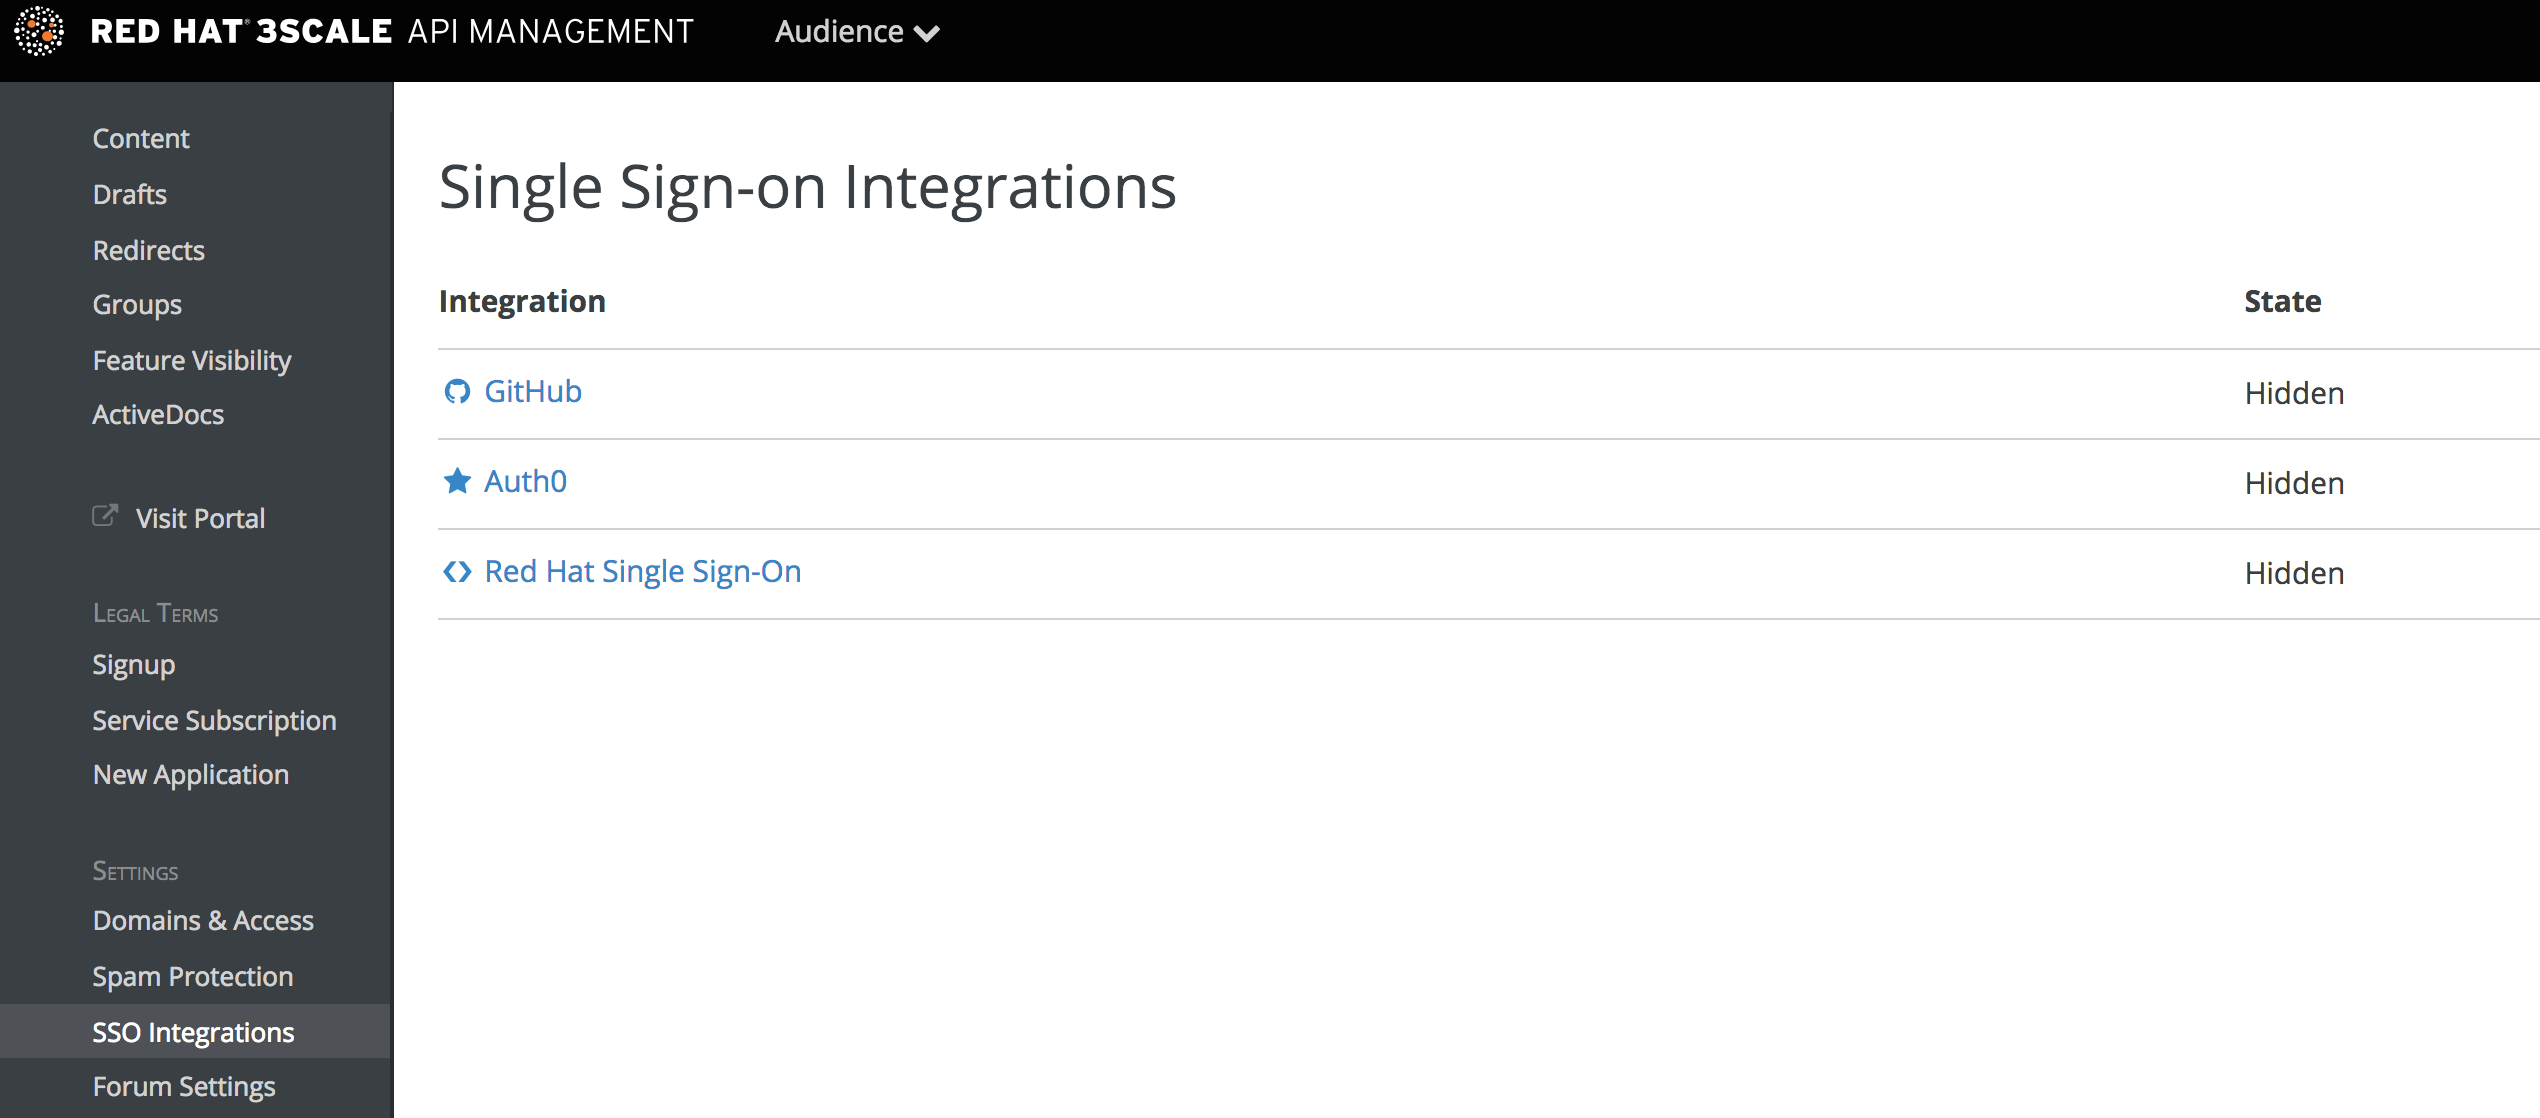 SSO integrations